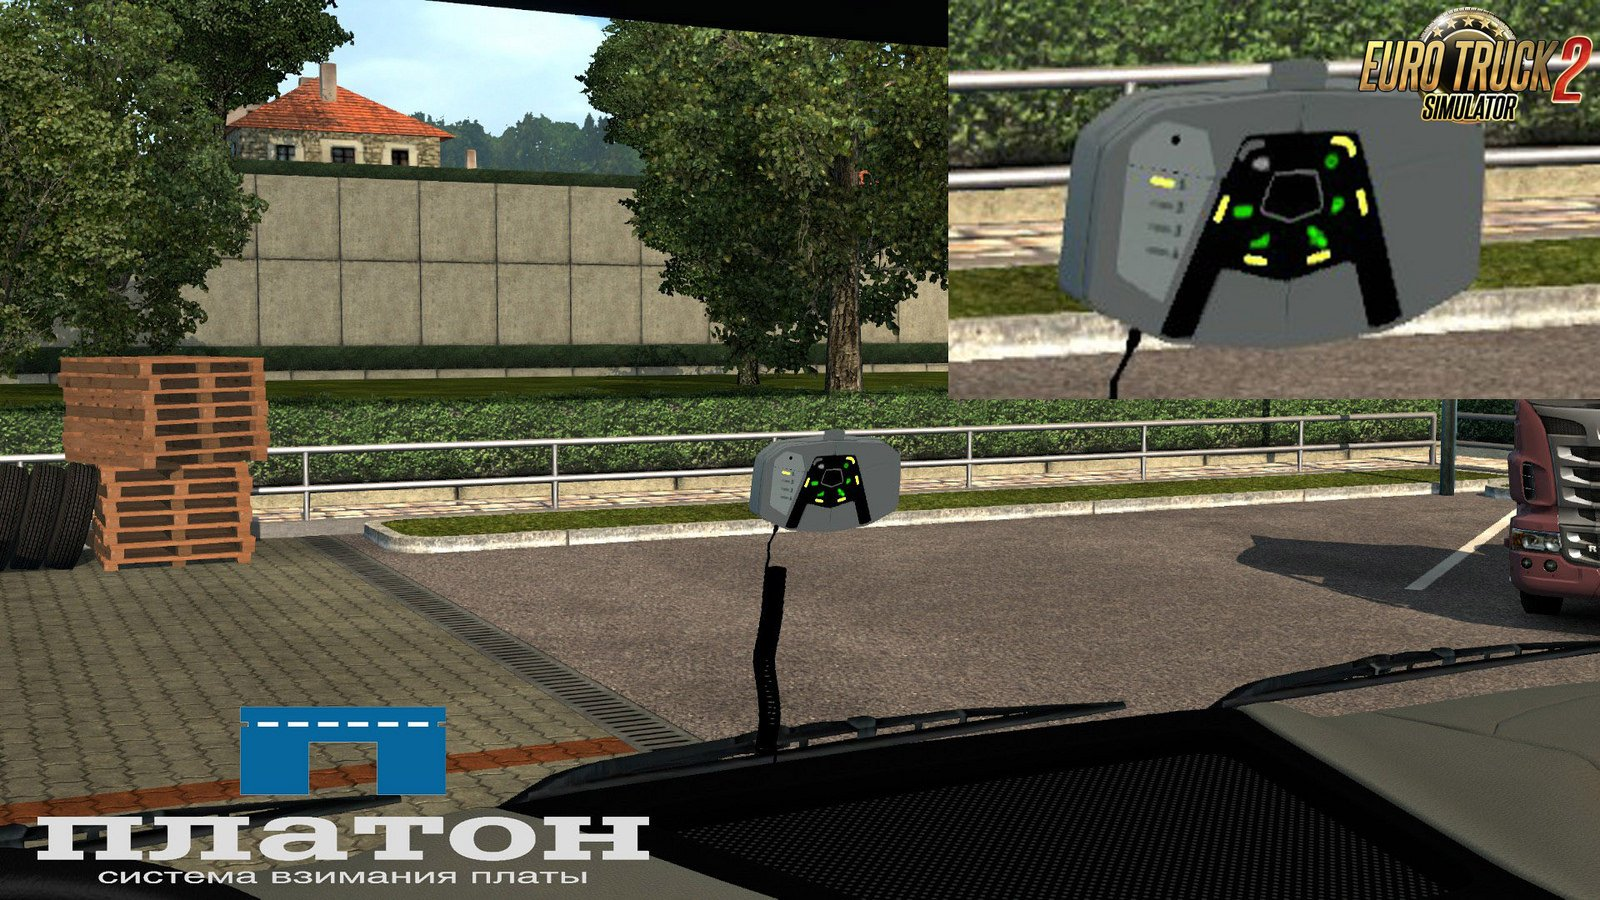 Platon onboard pay device v.1.2 for Ets2